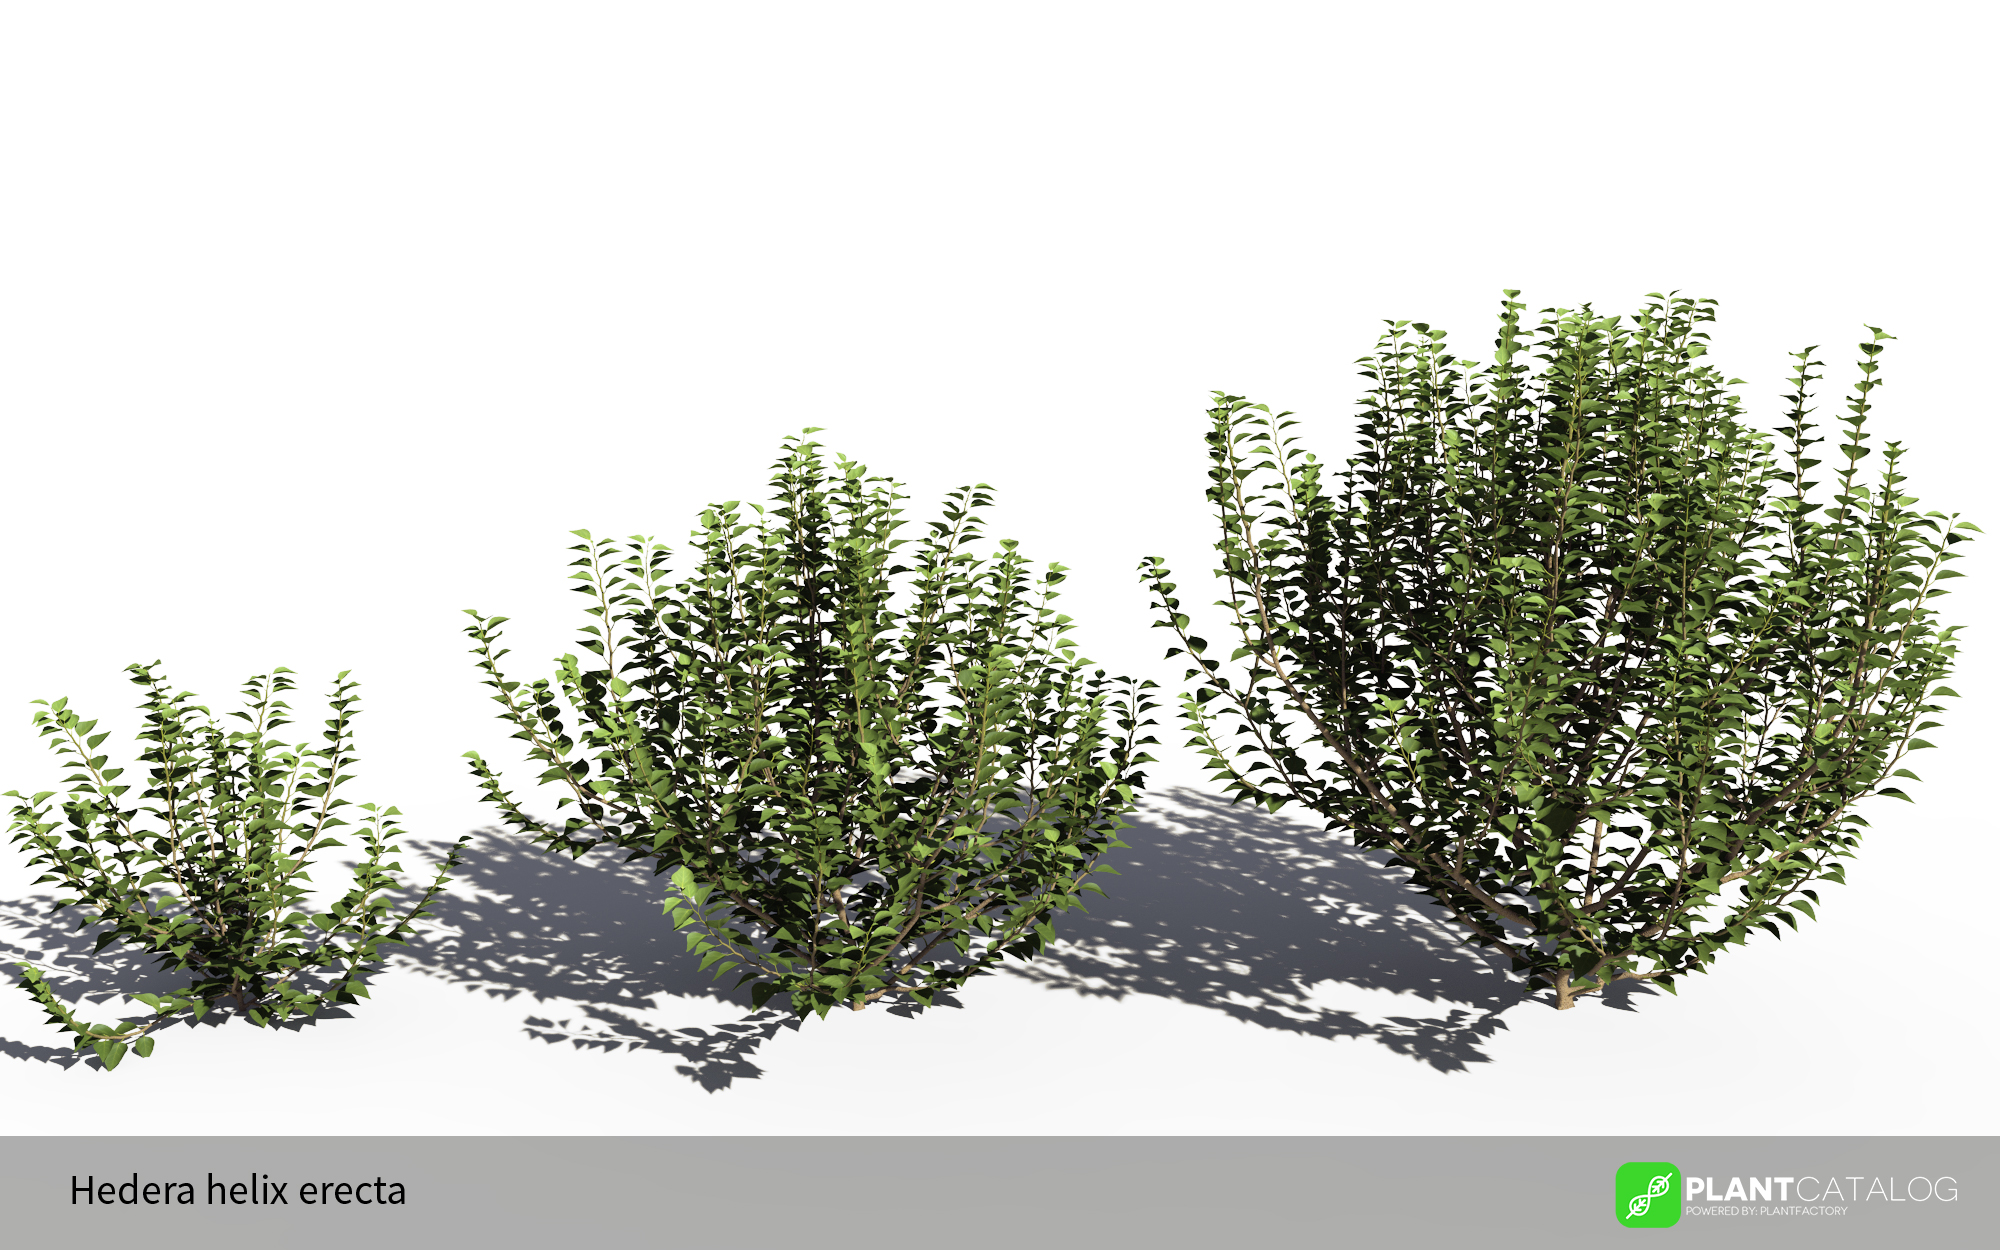 3D model of the Green ivy bushy - Hedera helix 'Erecta' - from the PlantCatalog, rendered in VUE